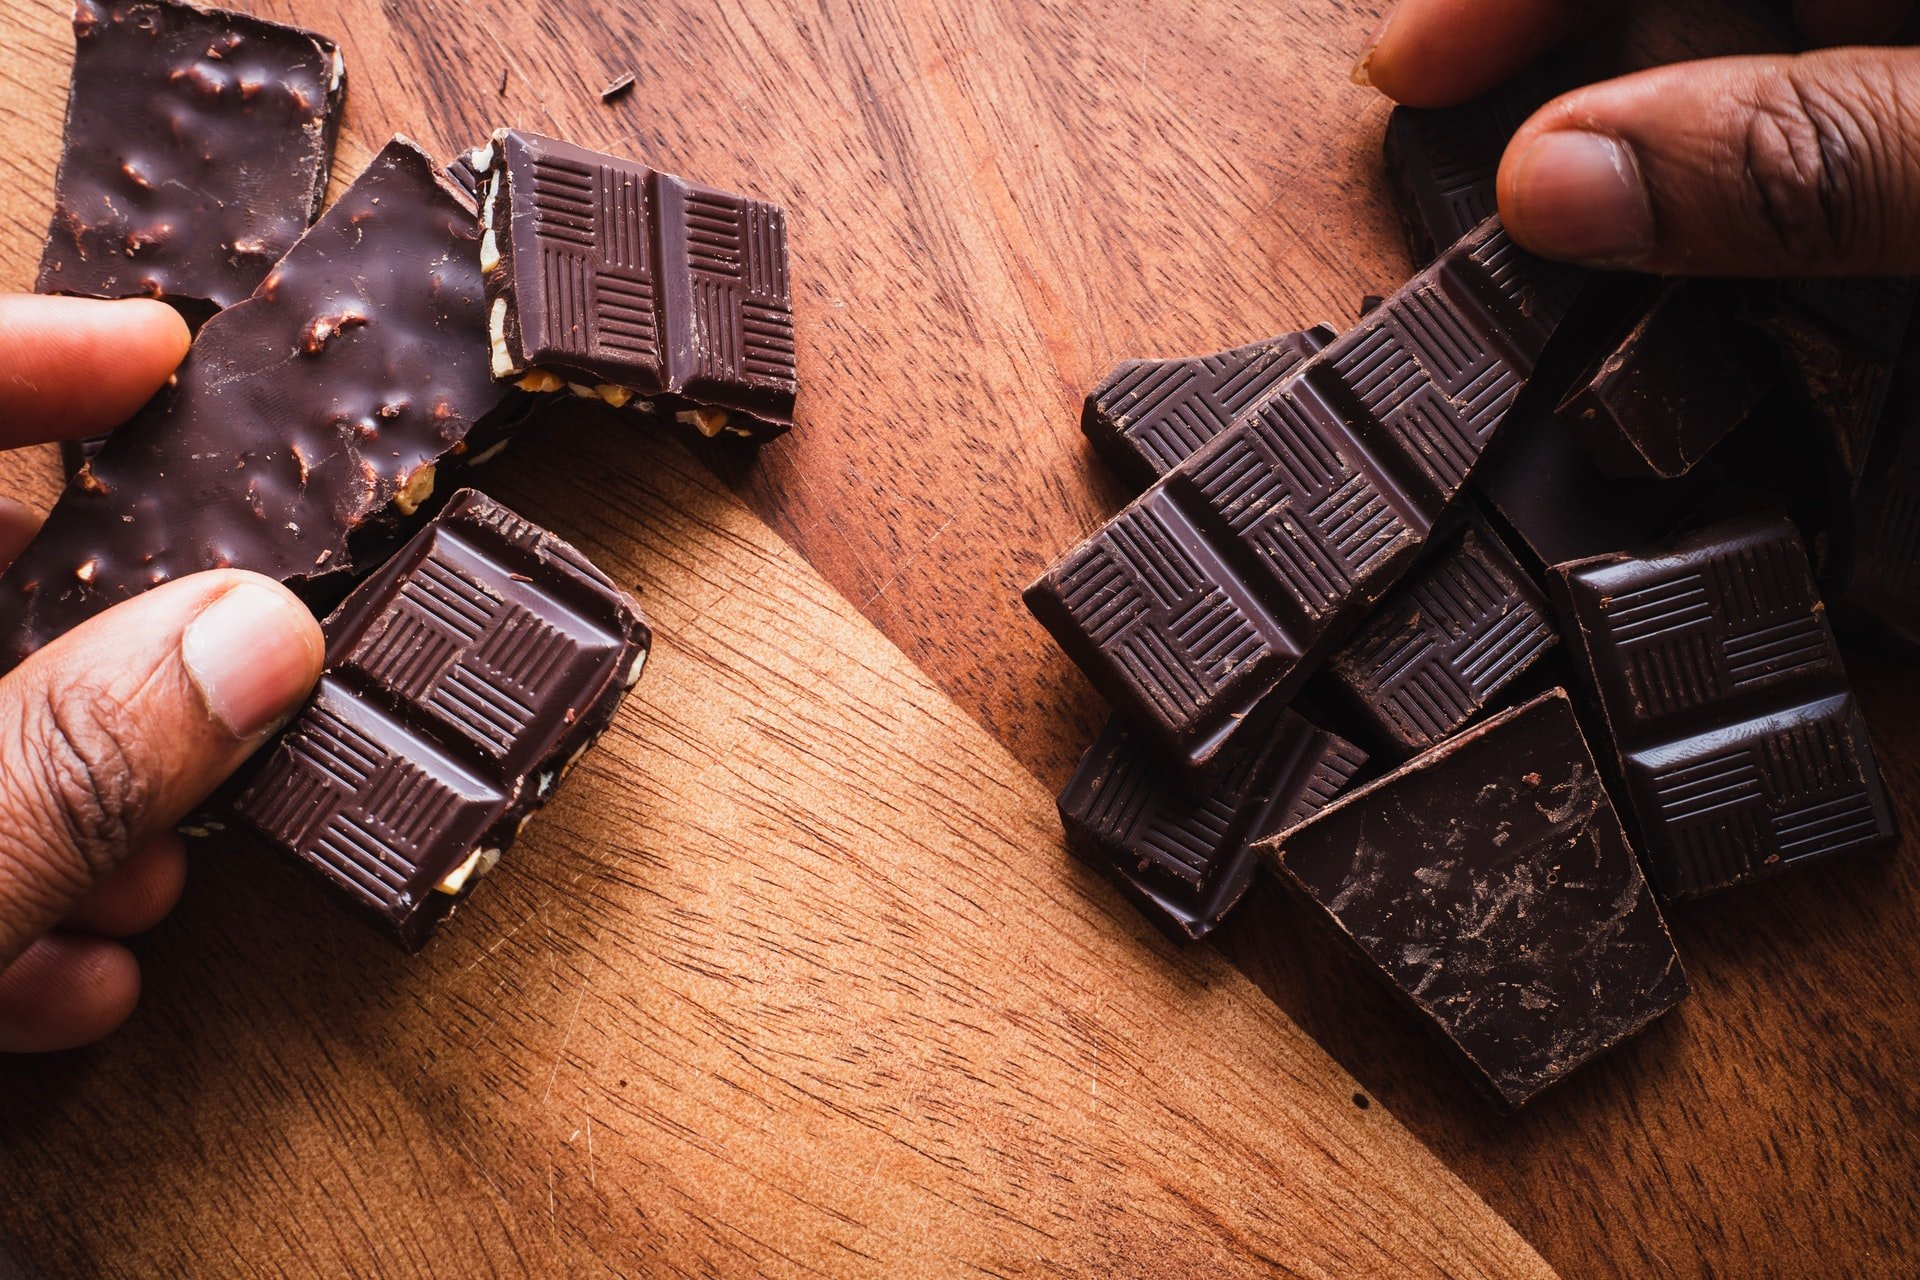 6 Ways Dark Chocolate Can Help You Lose Weight